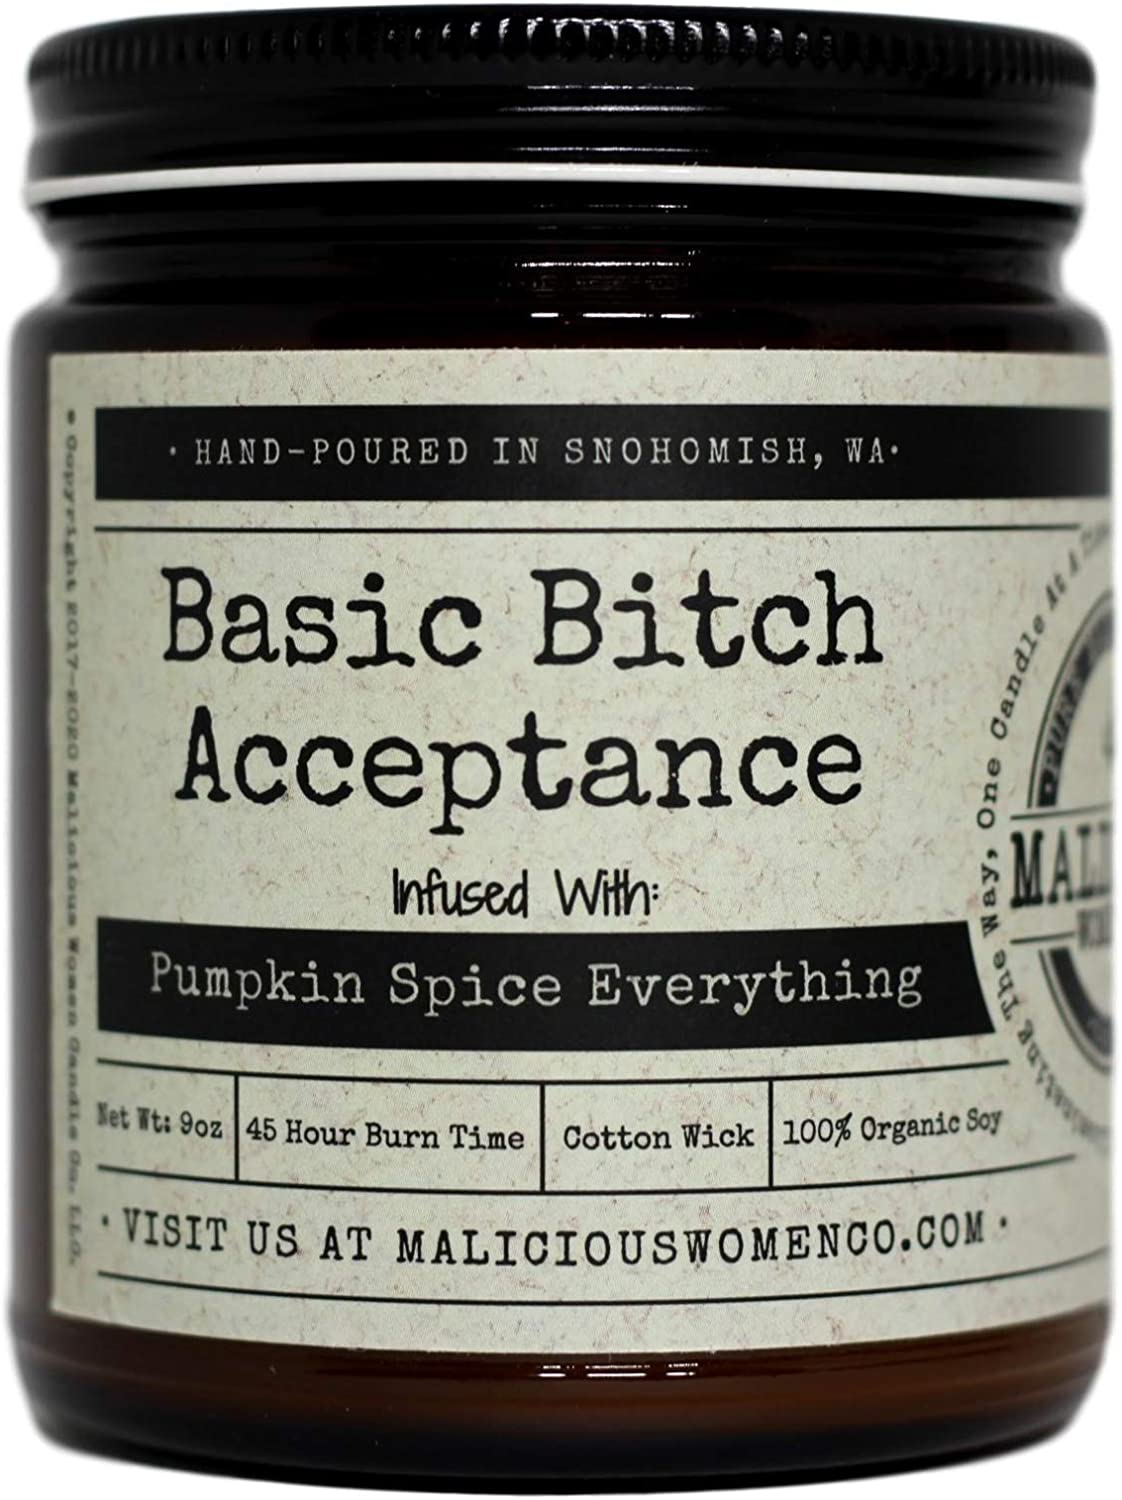 Malicious Women Candle Co - Basic Bitch Acceptance, Pumpkin Spice Latte Infused with Scarves, Boots & Pumpkin Spice Everything, All-Natural Organic Soy Candle, 9 oz